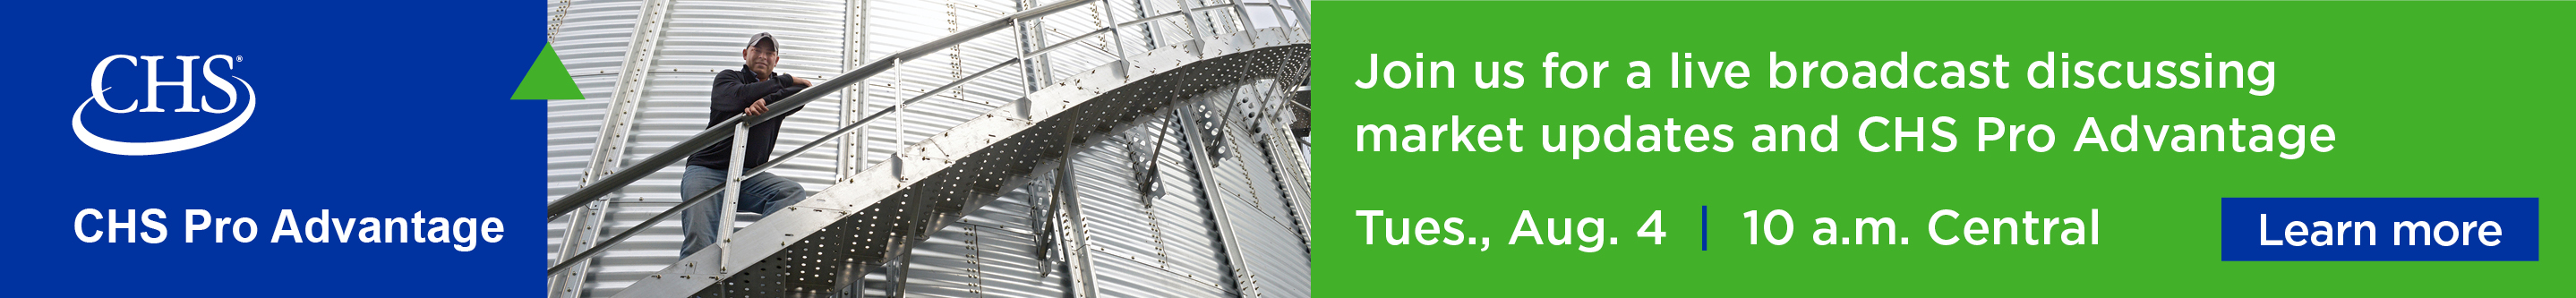 Join us to hear about market updates, CHS Pro Advantage